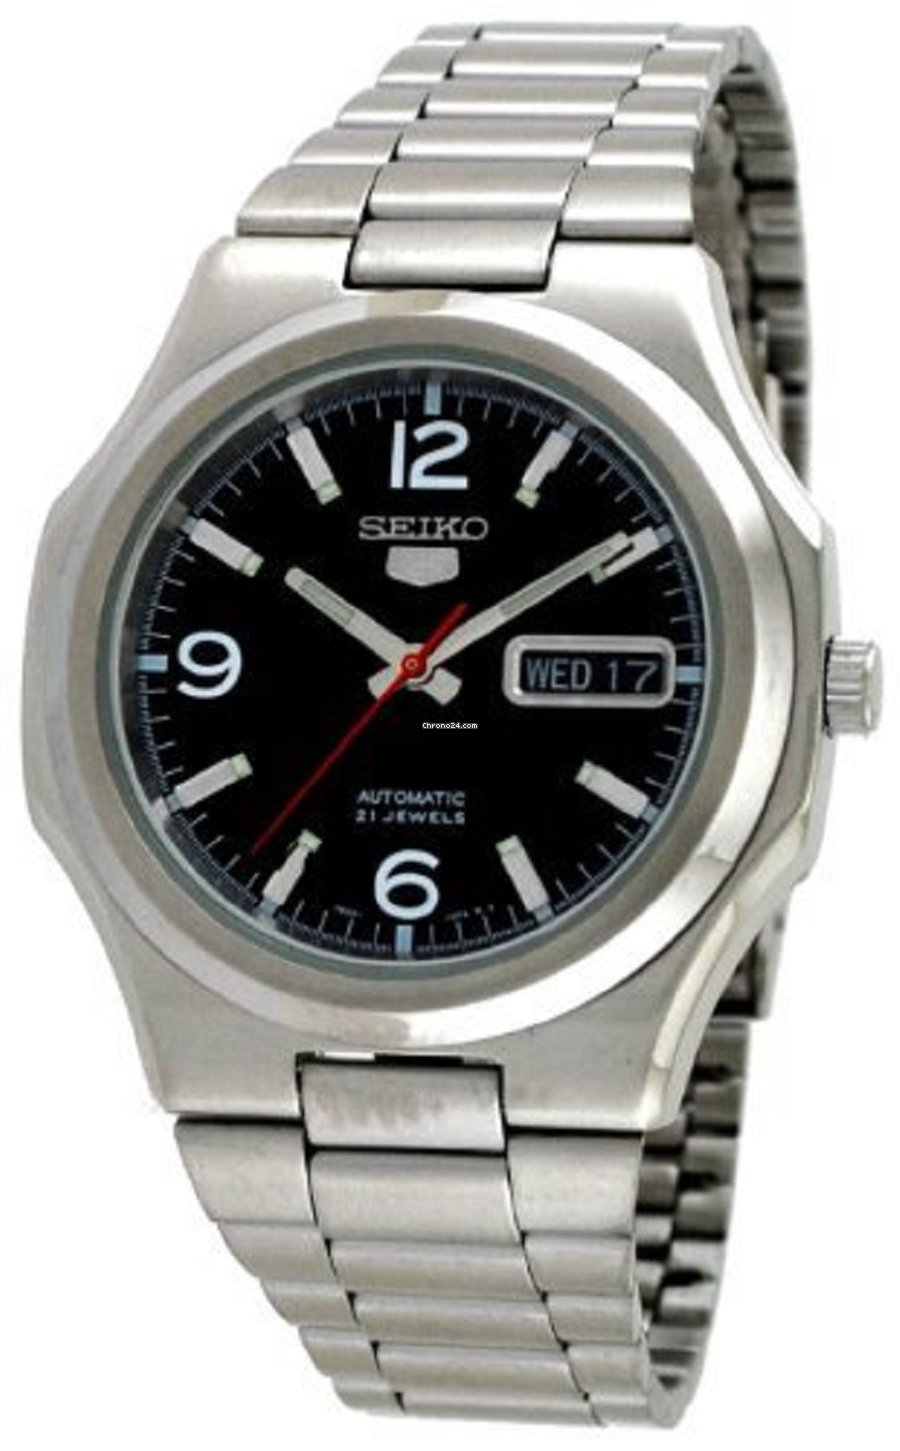 Seiko 5 Automatic Watch - SNKK59